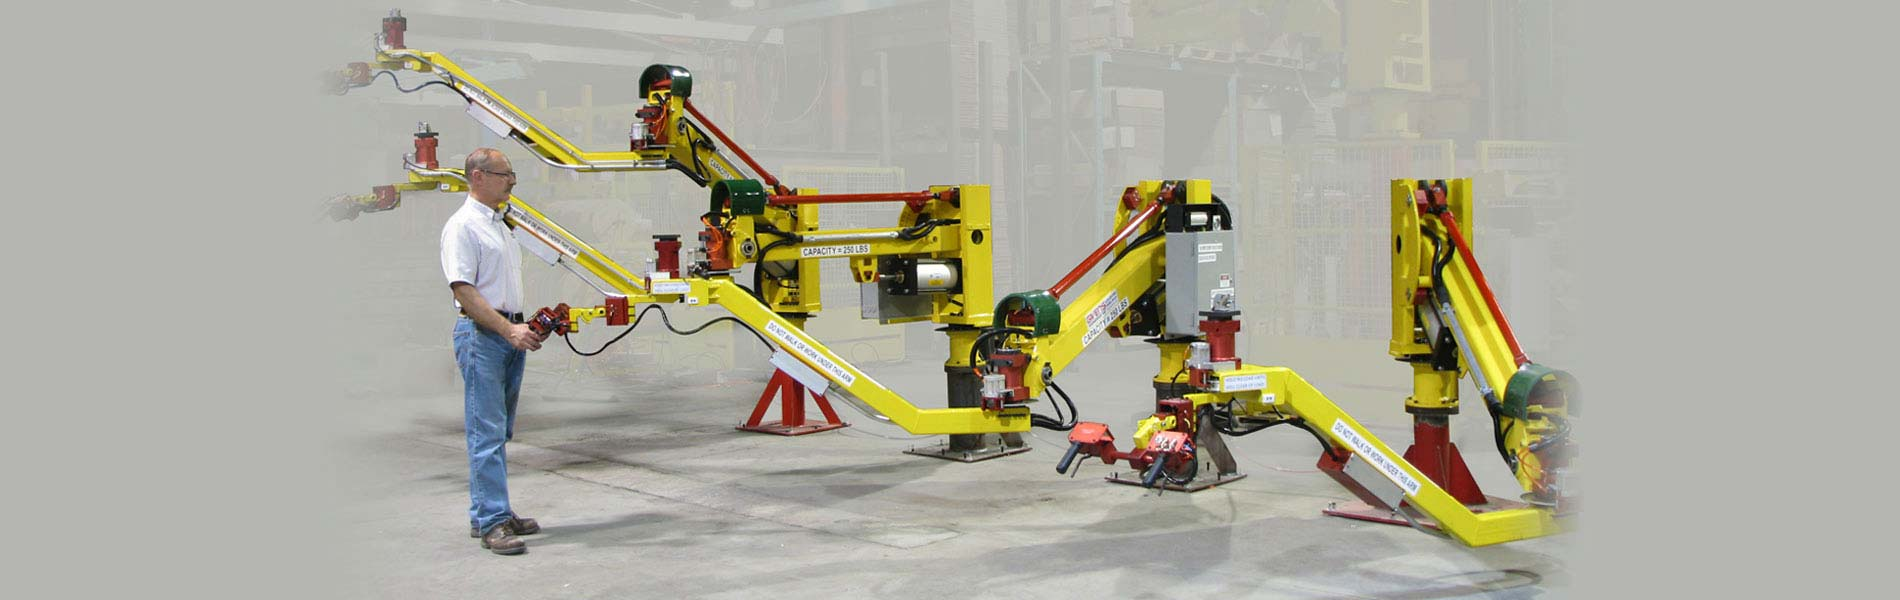 Industrial Manipulators designed in the US by Givens Lifting Systems Inc.